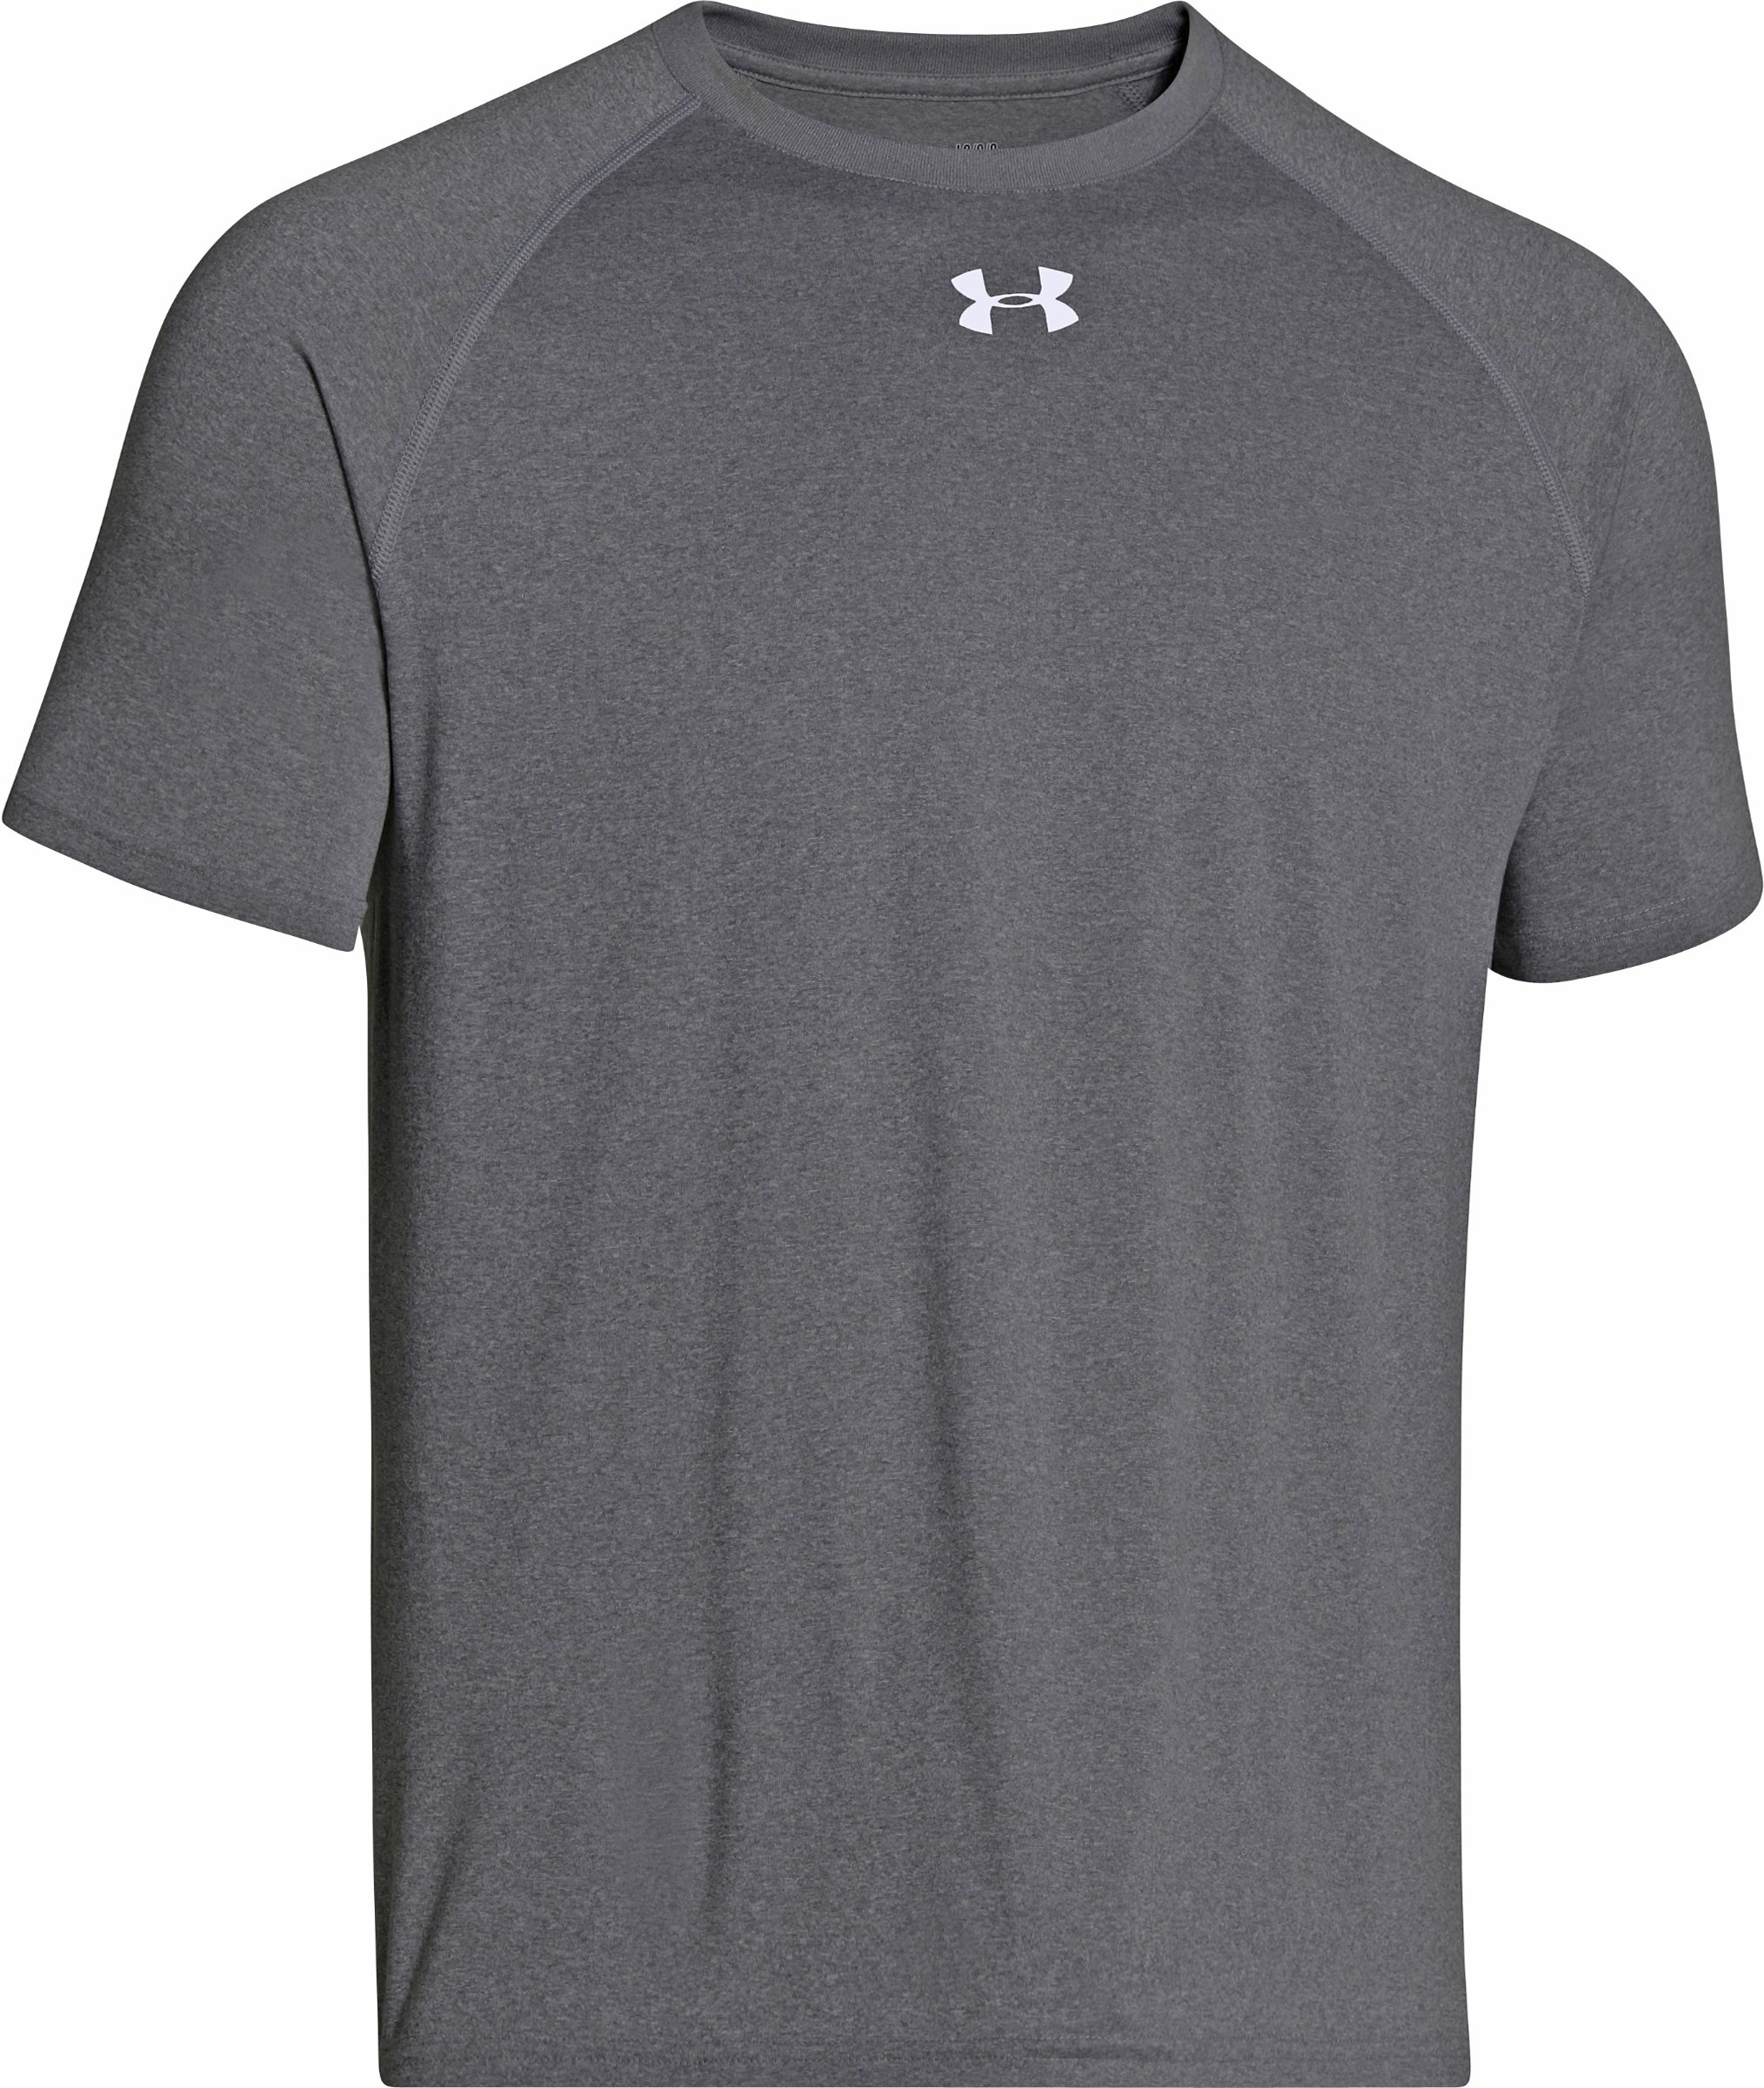 Under Armour Boy's Locker Short Sleeve T-Shirt, Carbon Heather/White, S